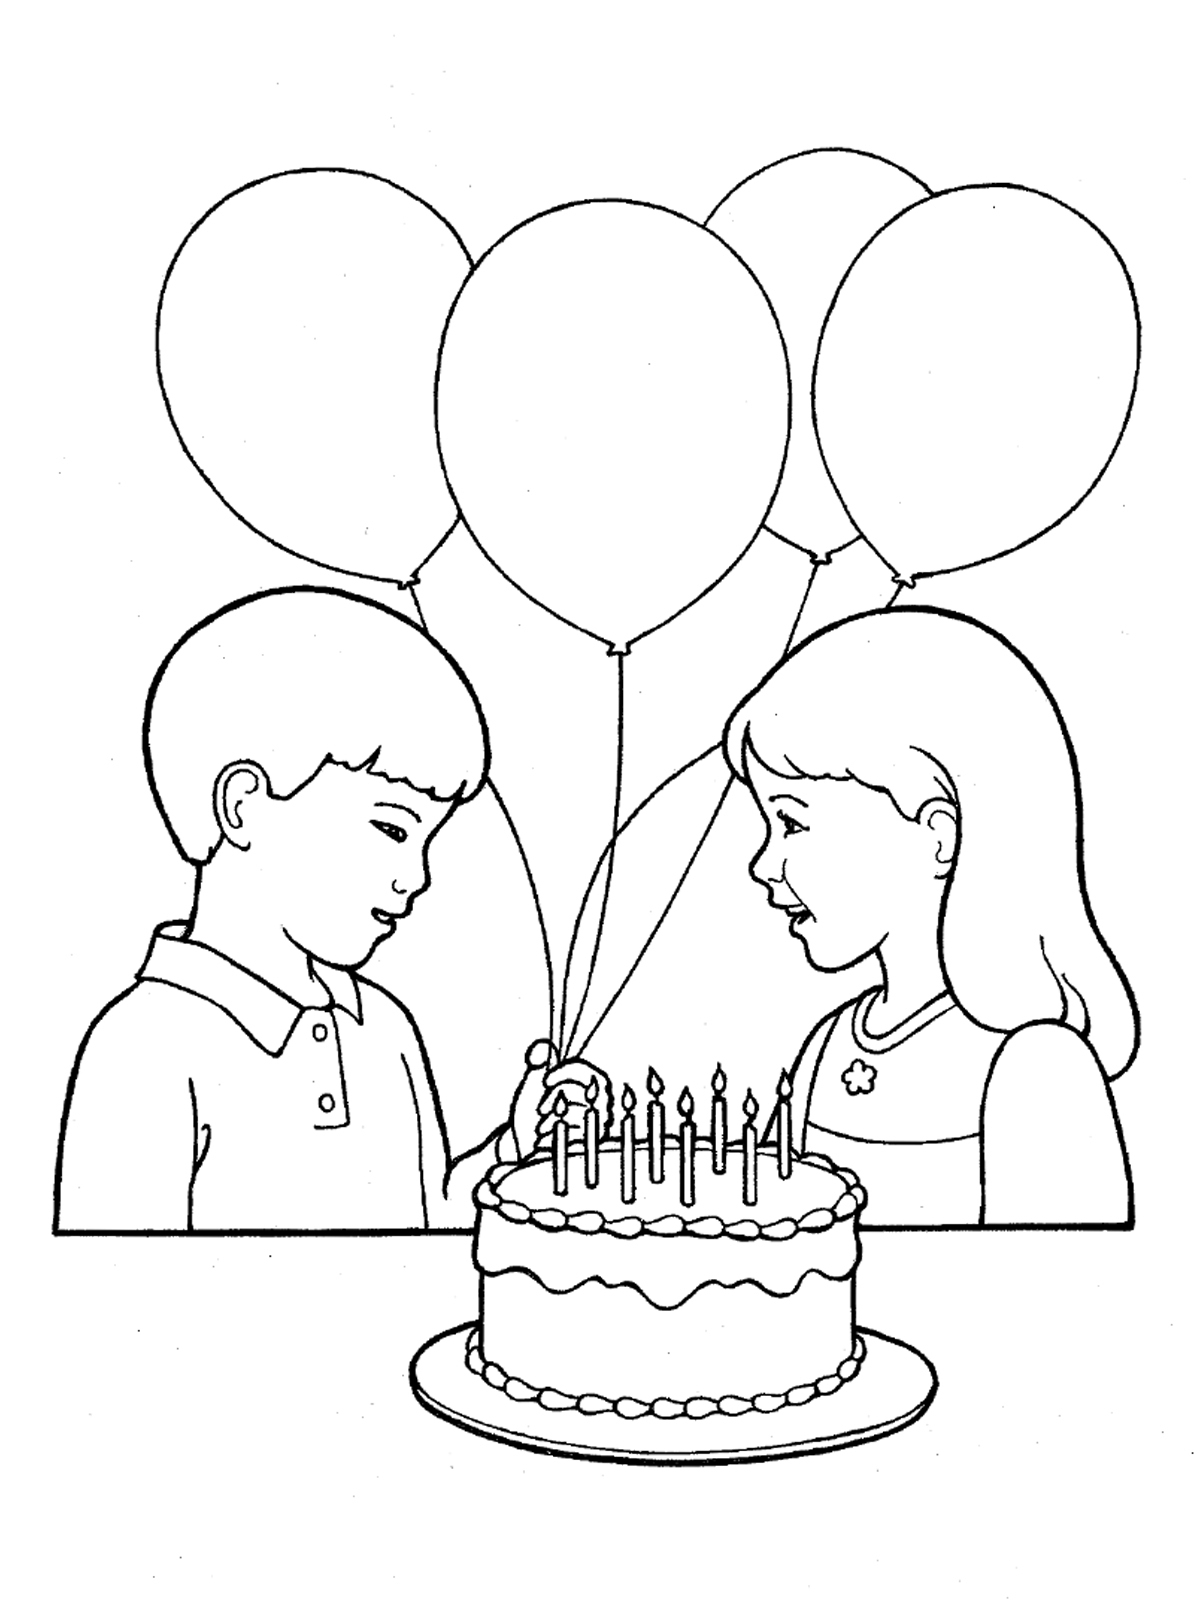 simple birthday party drawings ; drawing-pictures-of-birthday-party-primary-children-birthday